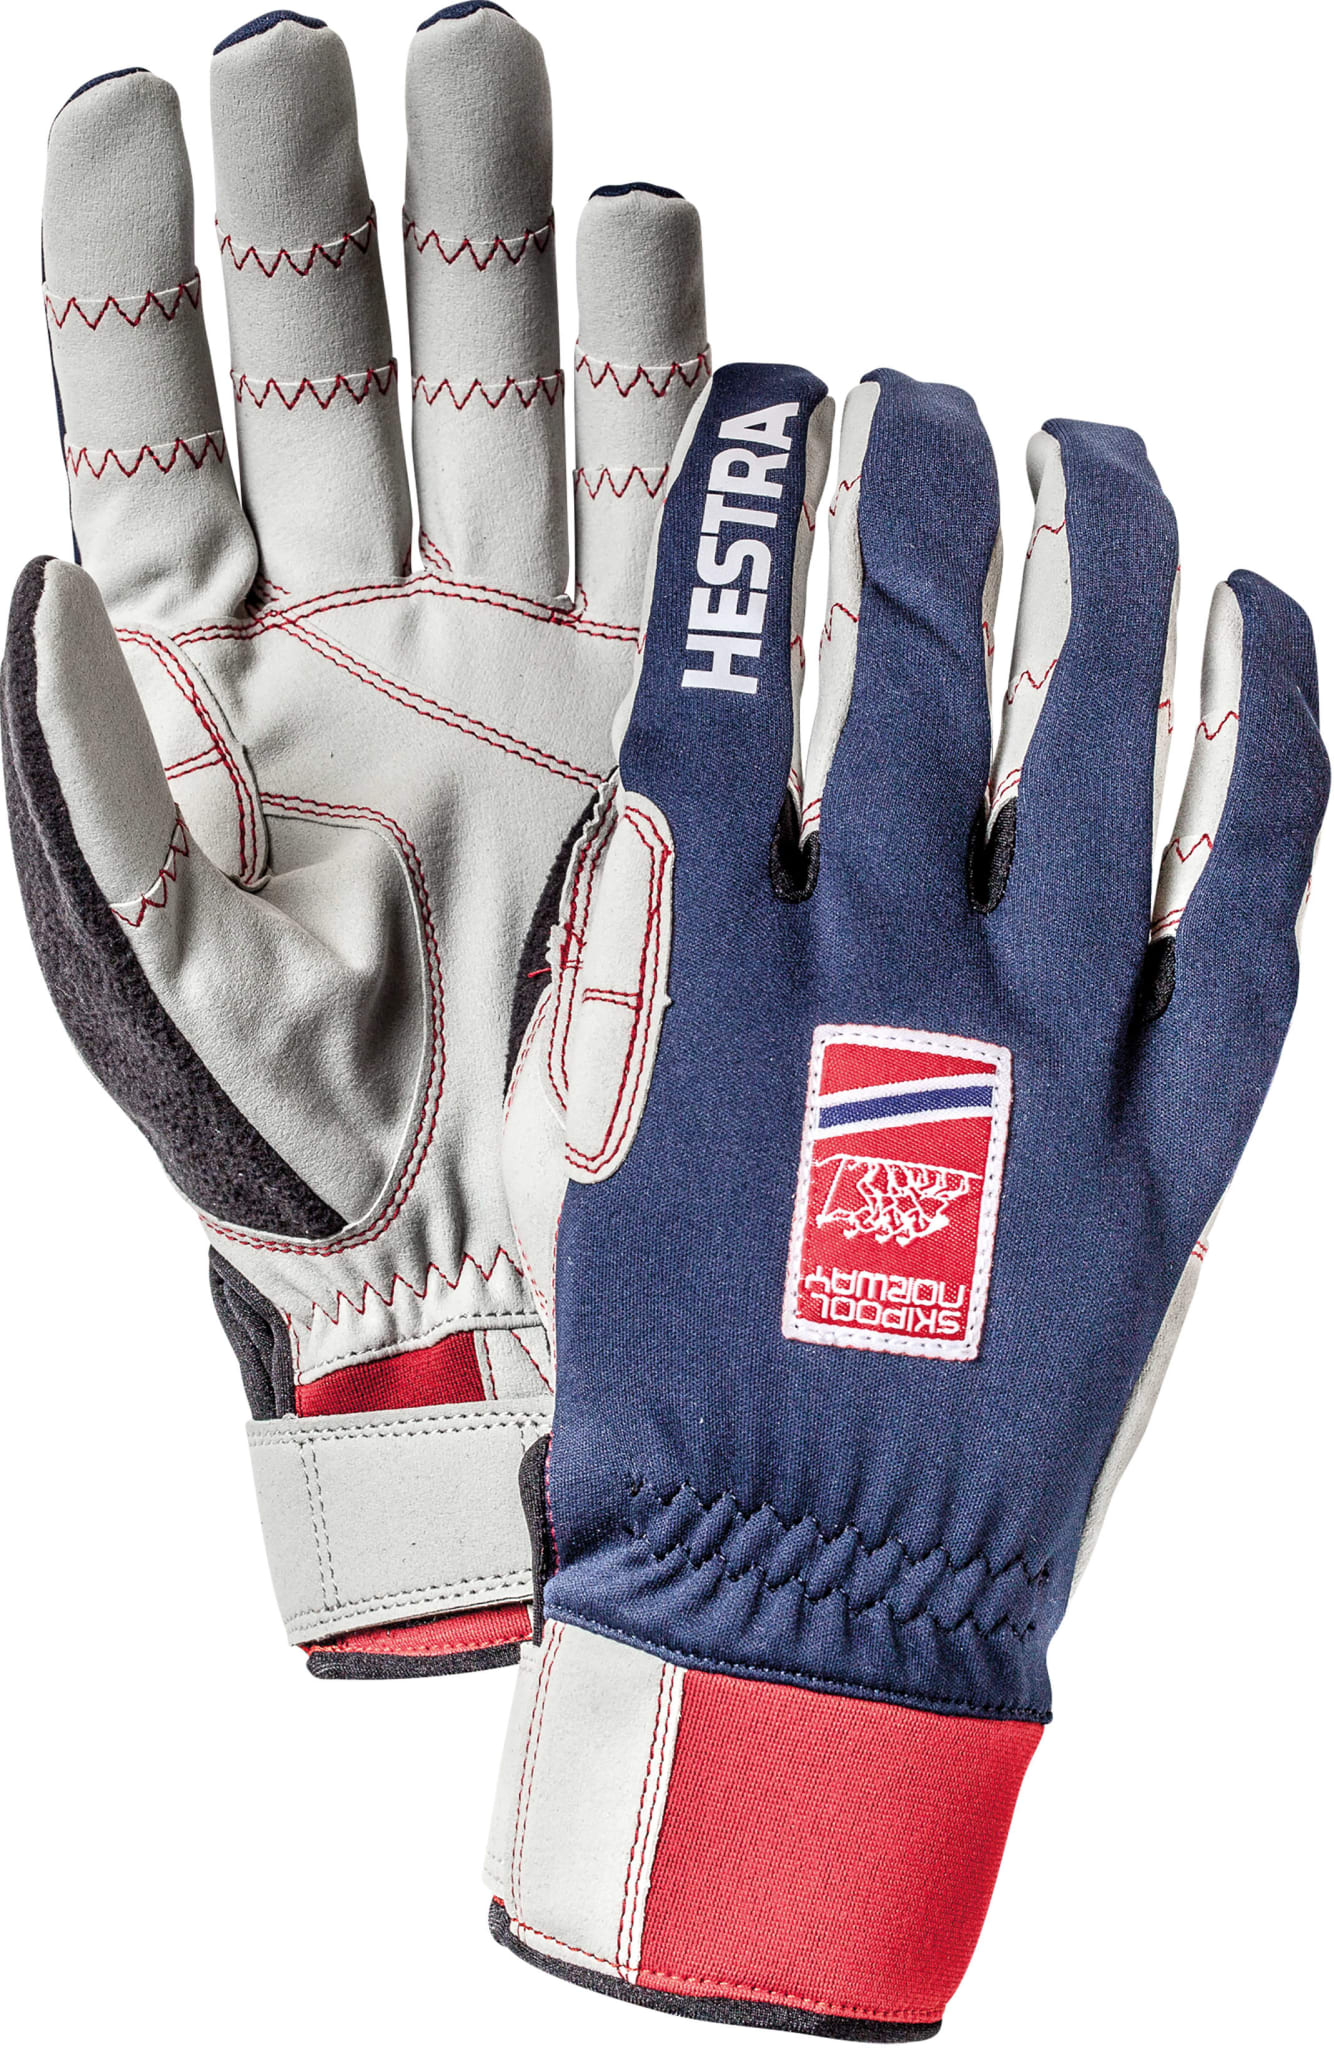 Ergo Grip Windstopper Race Gloves